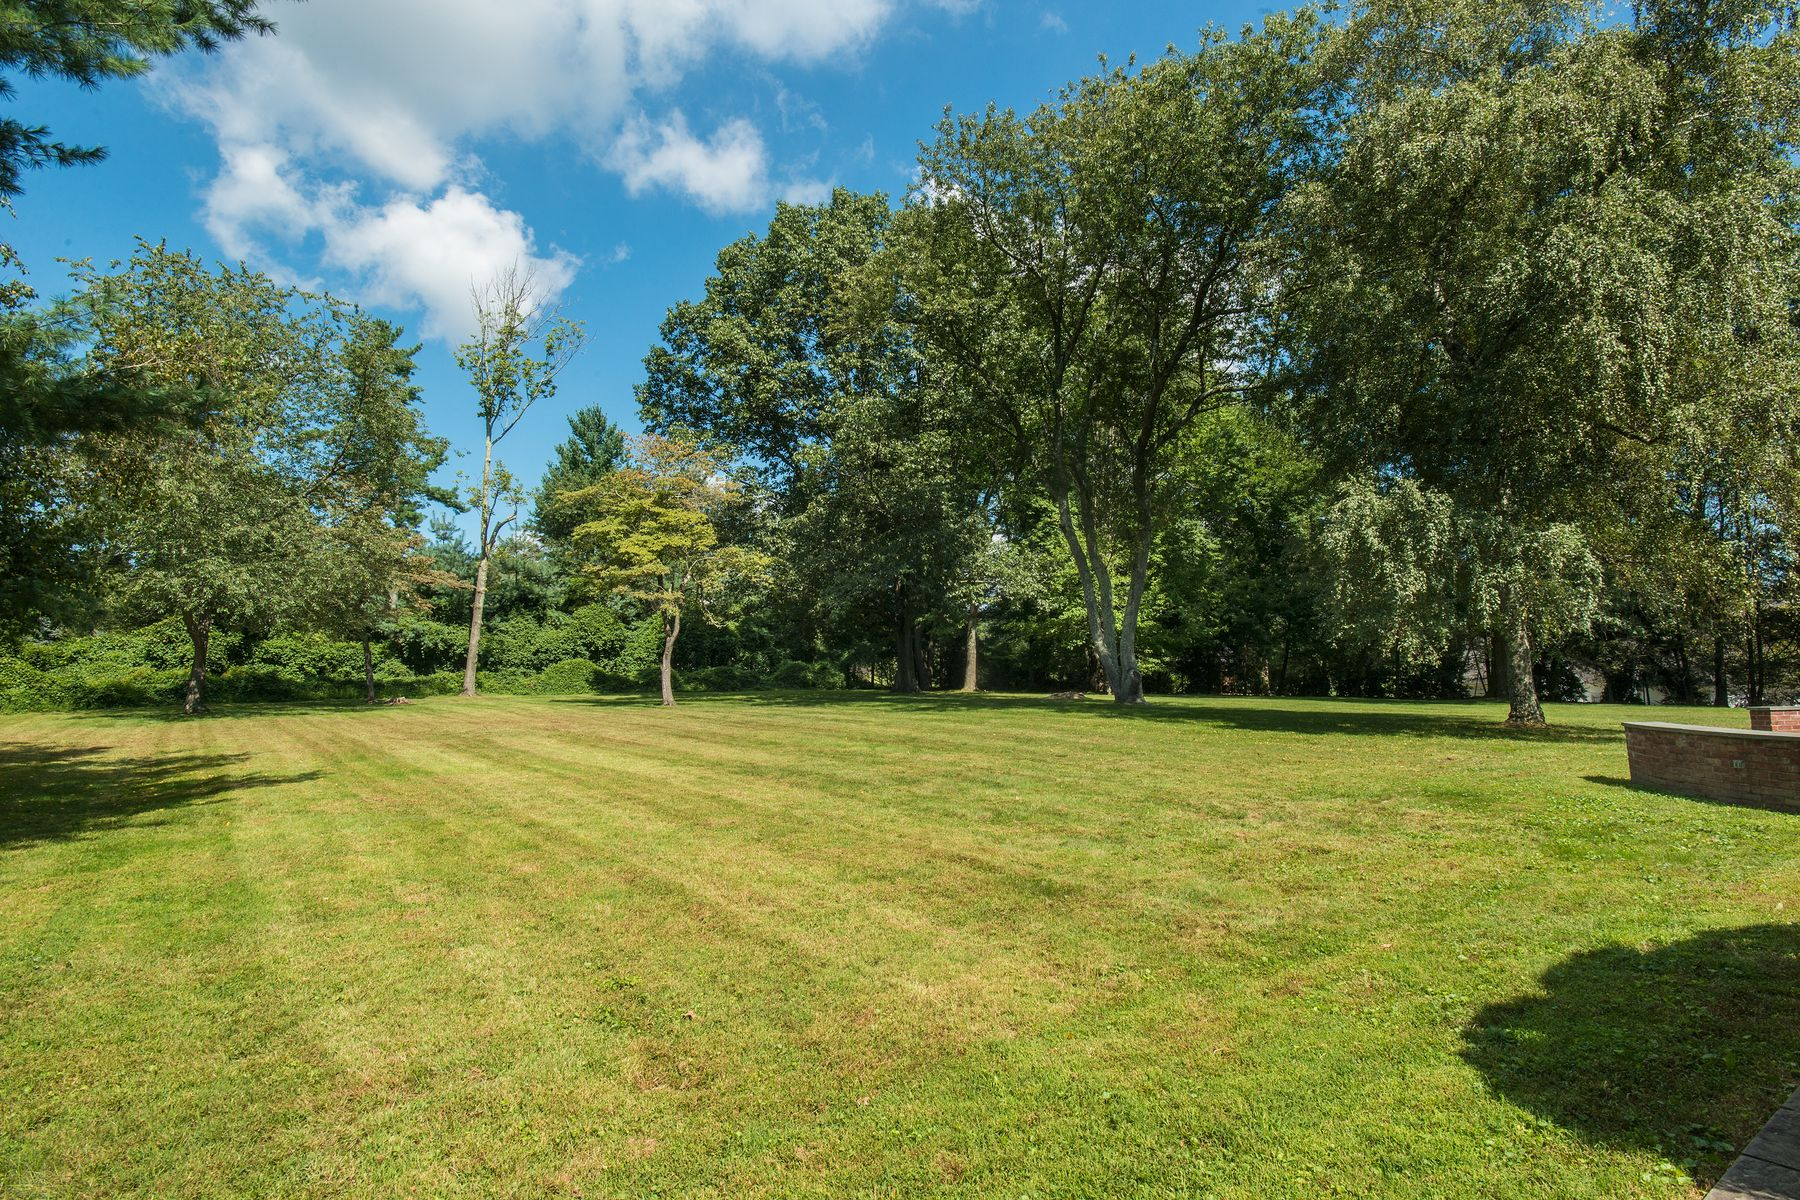 Land for Sale at 33 Meadowcroft Lane(Land) 33 Meadowcroft Lane Lot A Greenwich, Connecticut 06830 United States